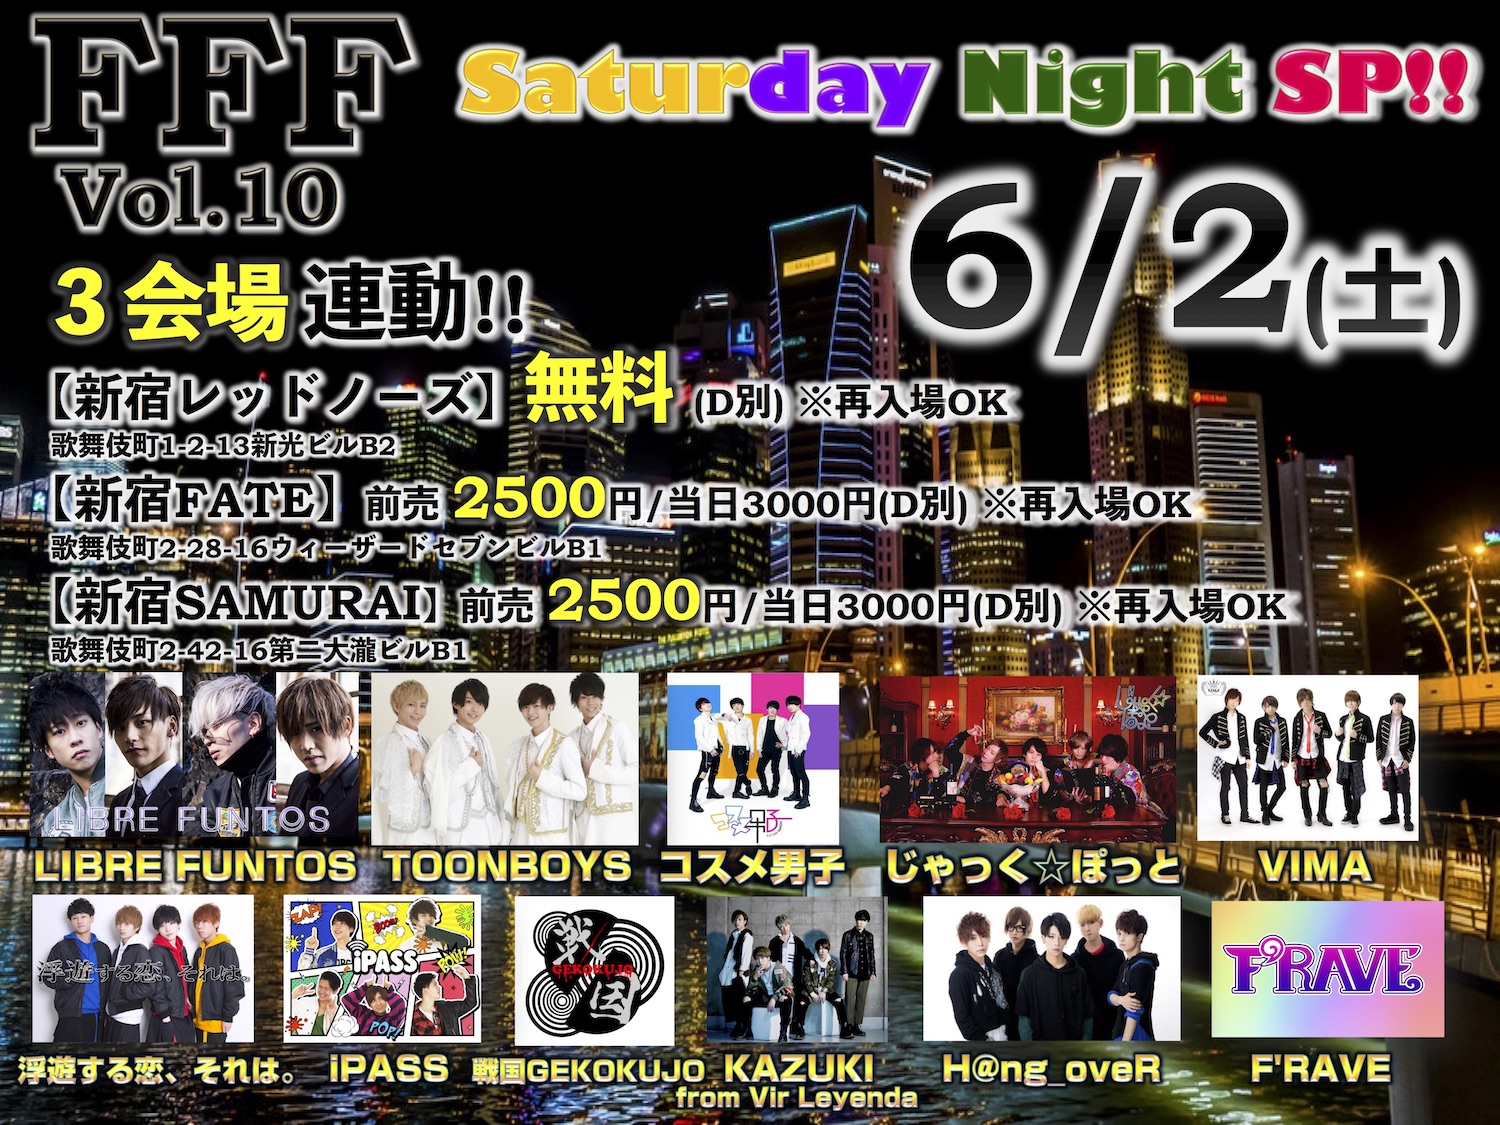 【新宿FATE会場】FFF Saturday Night SP!!